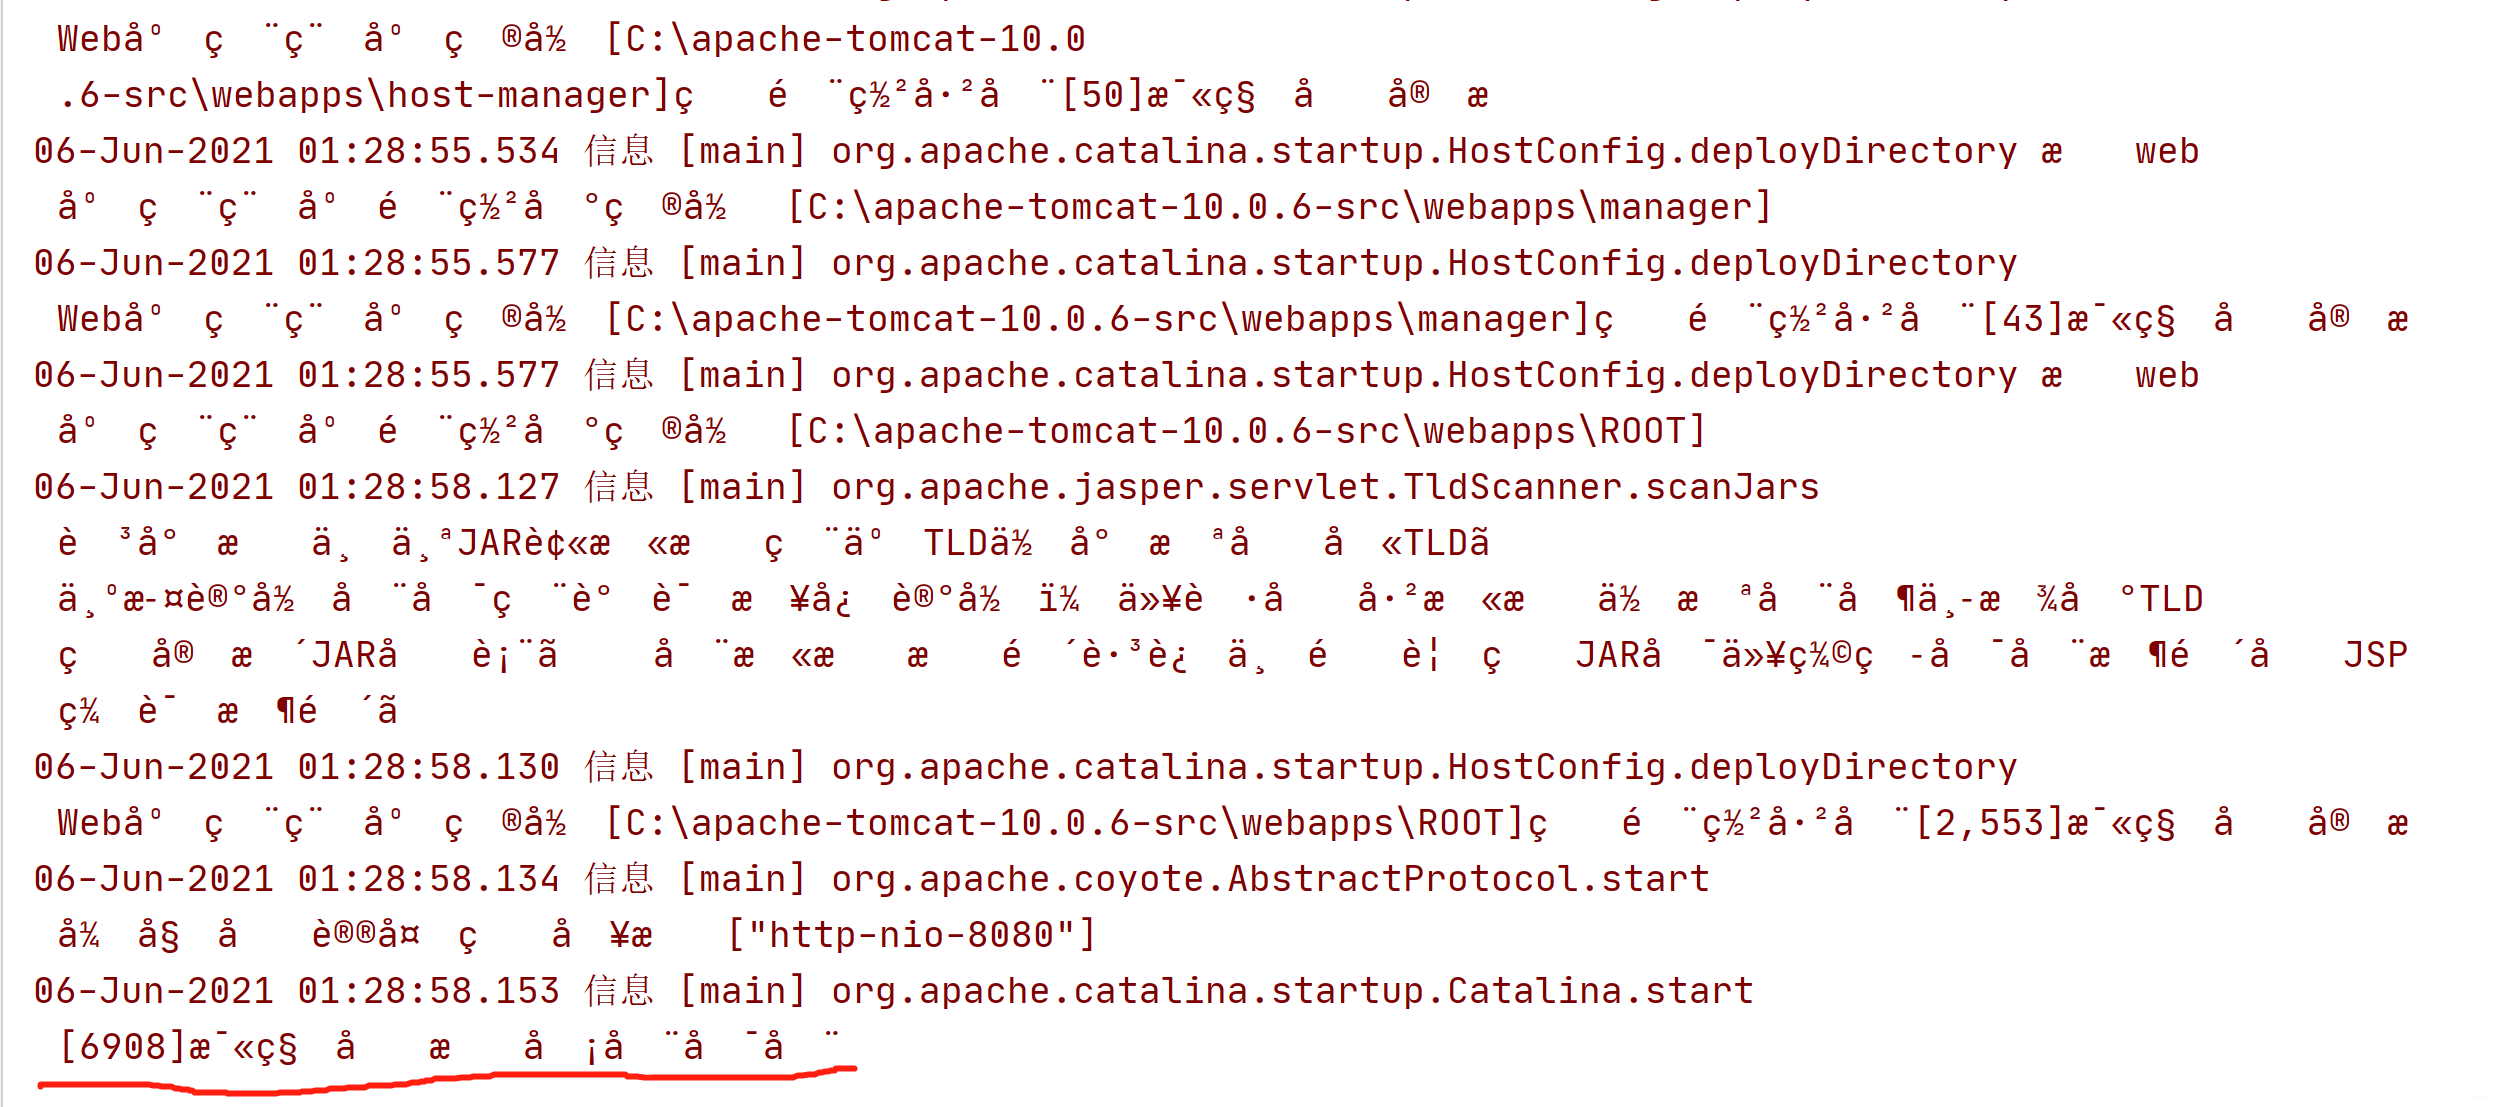 Tomcat10 is also running, but there are garbled characters.  .